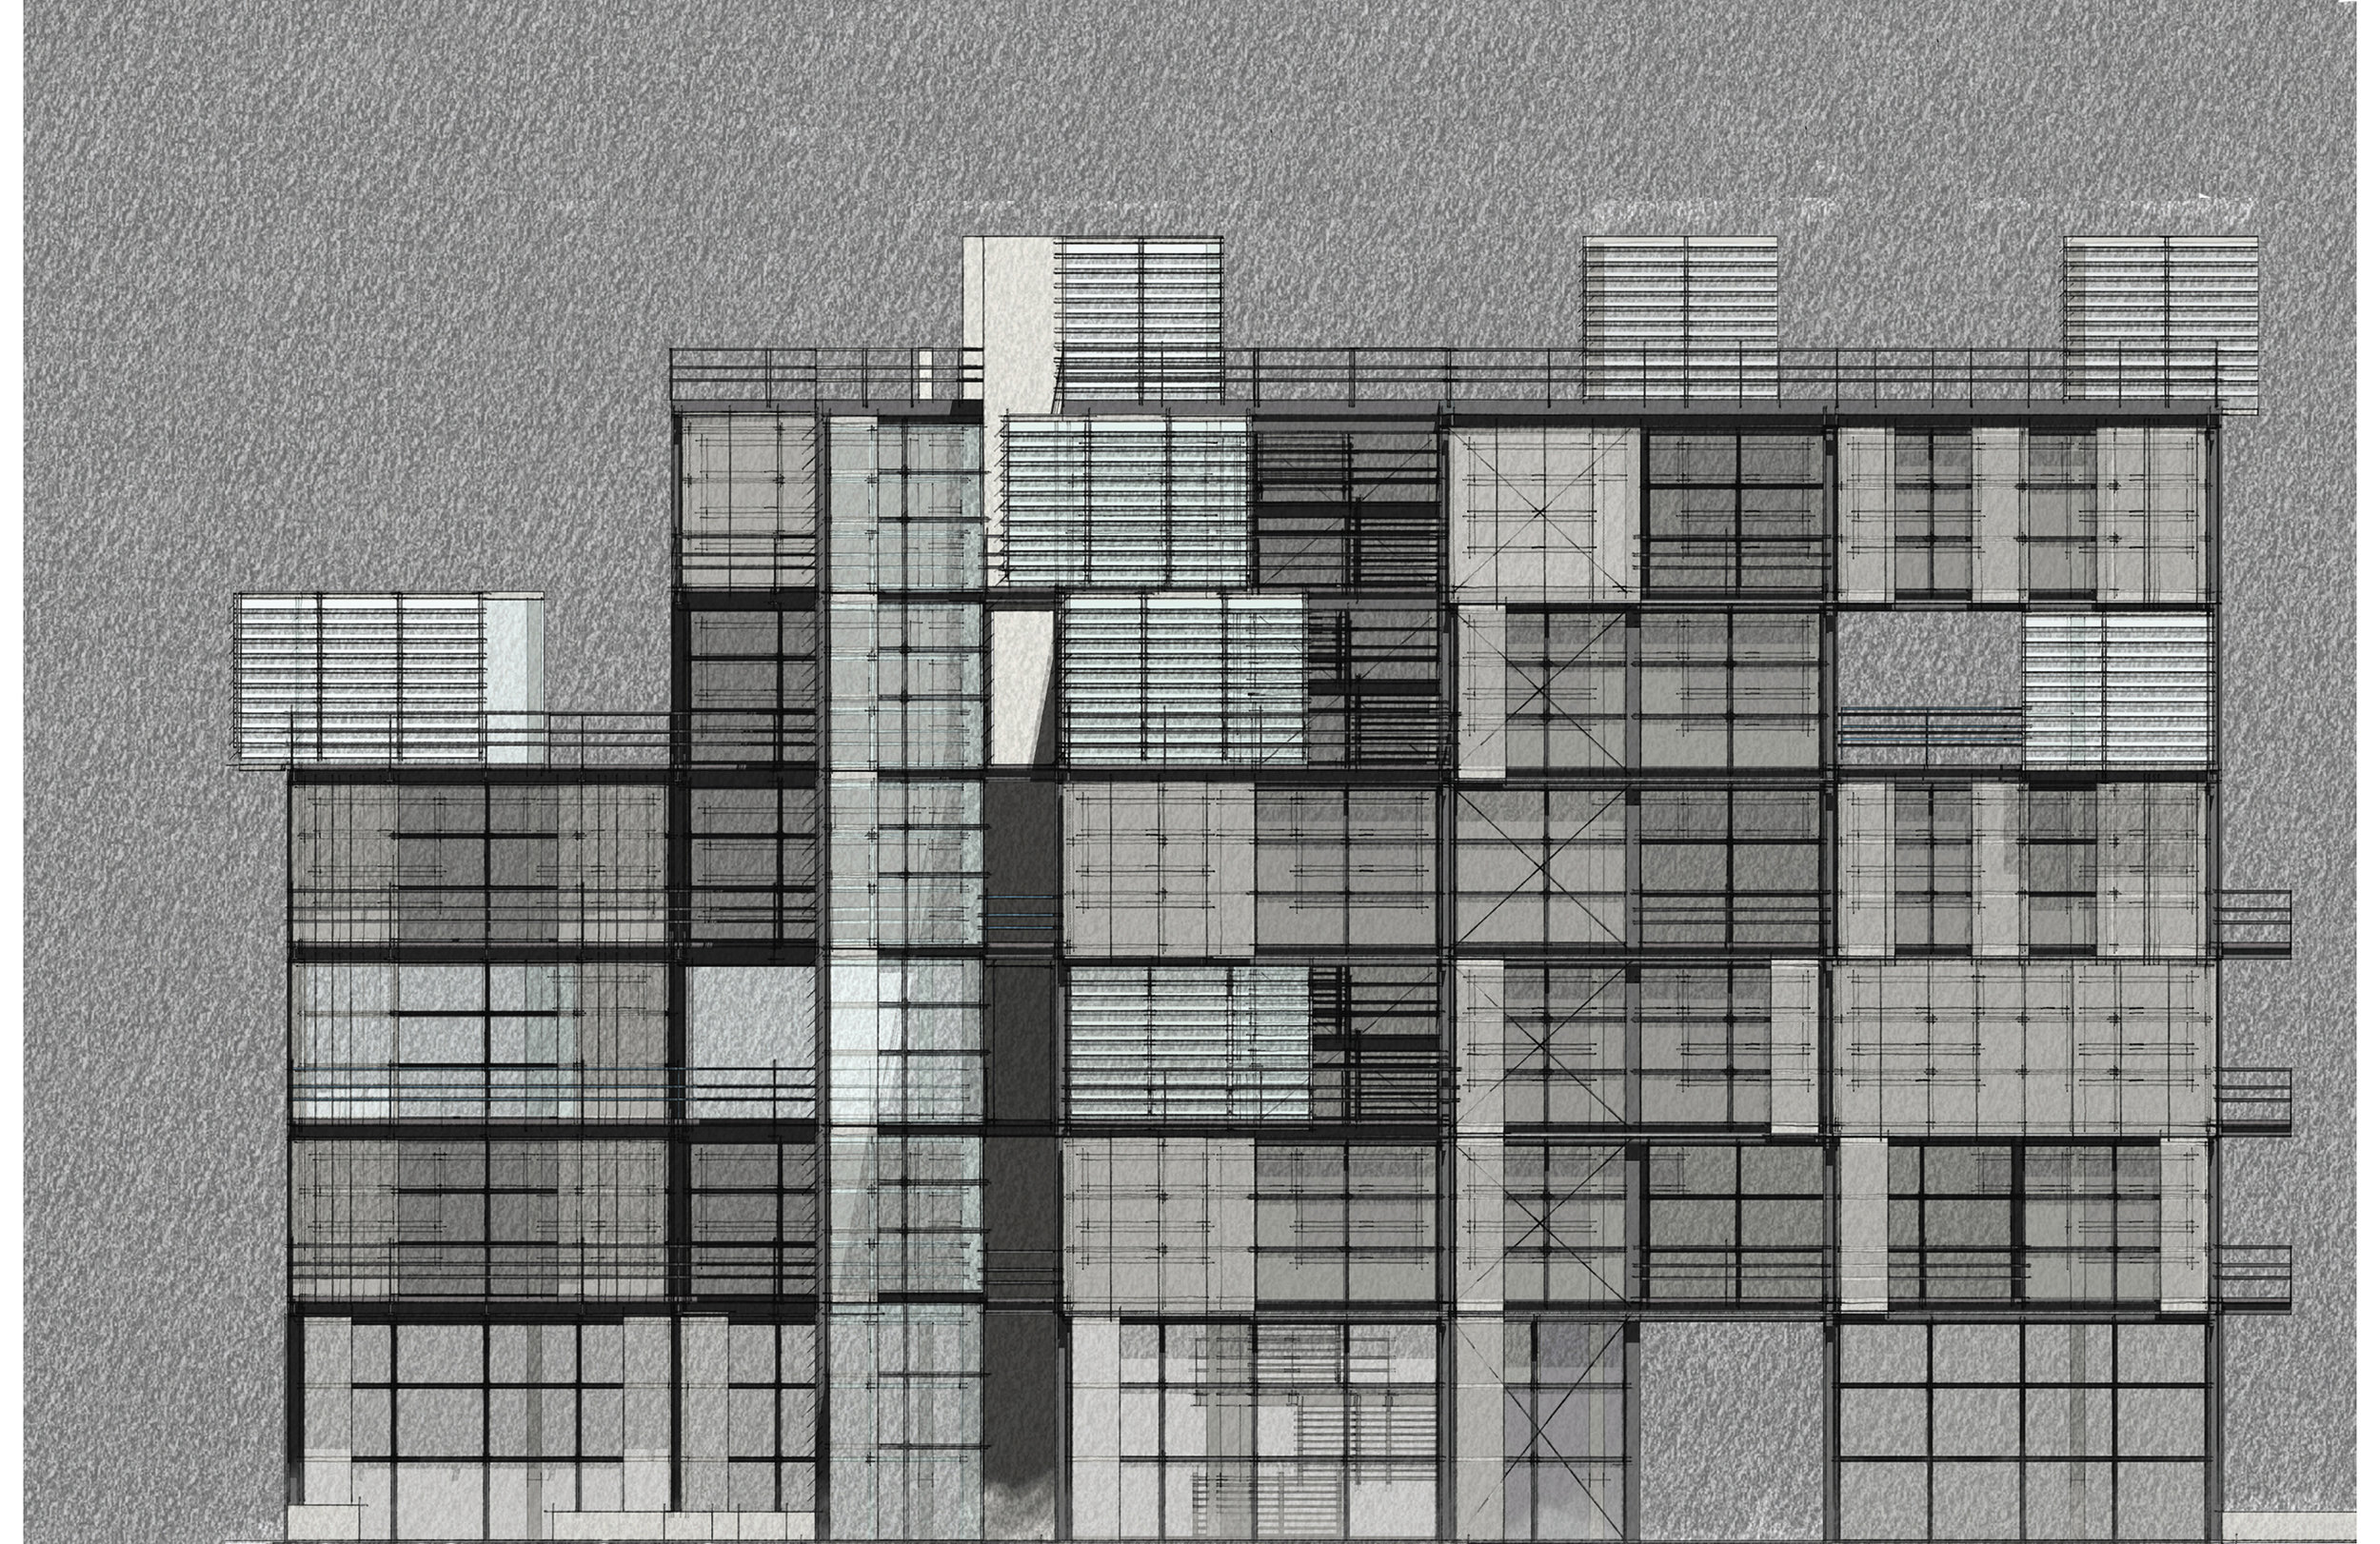 Artistic elevation render sketch style